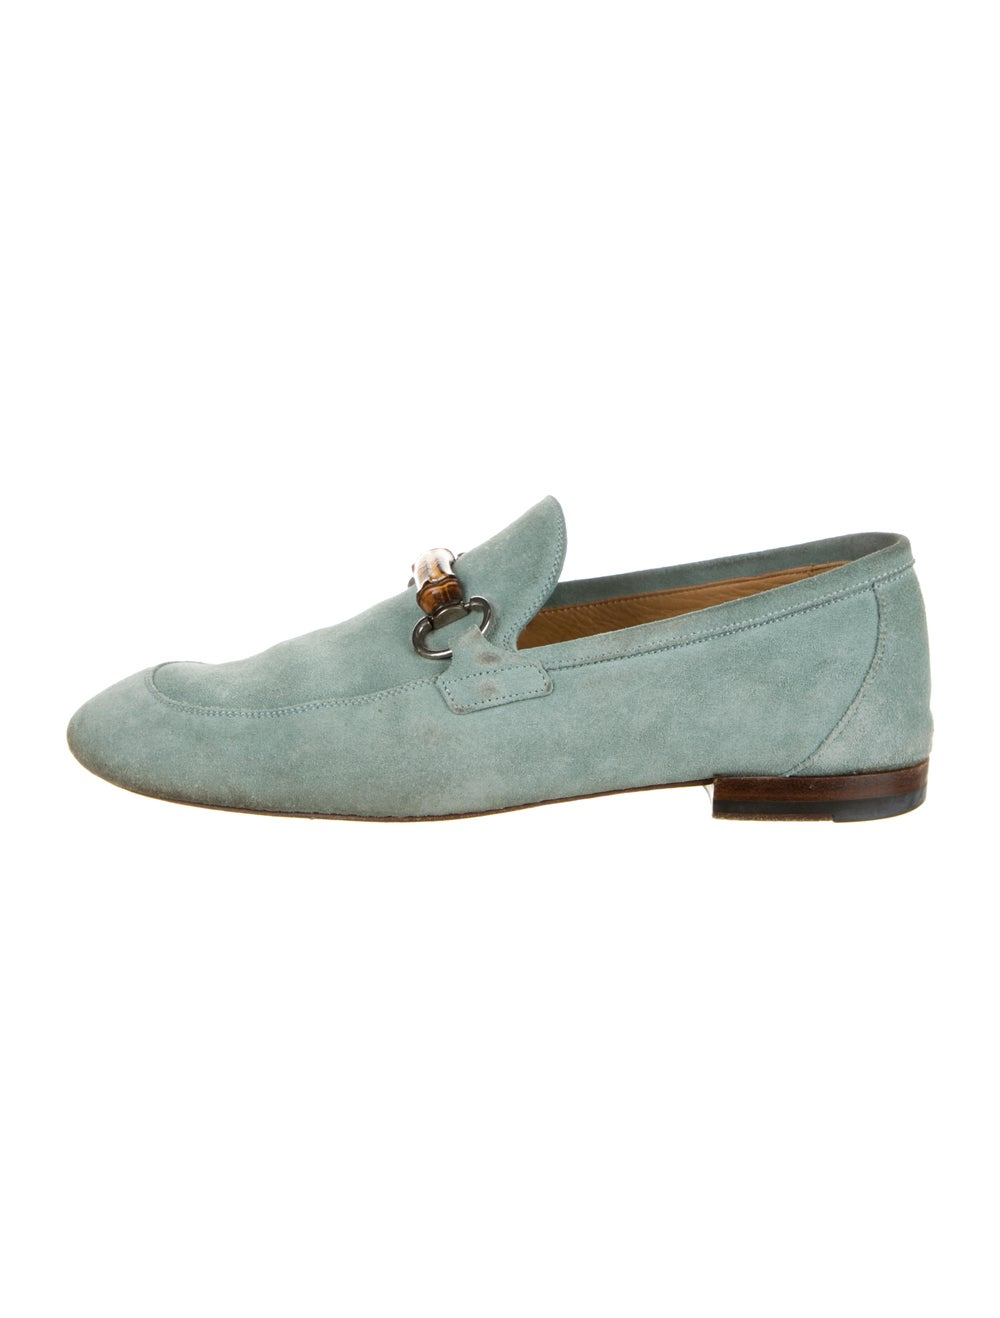 Gucci Horsebit Accent Suede Loafers Green - image 6